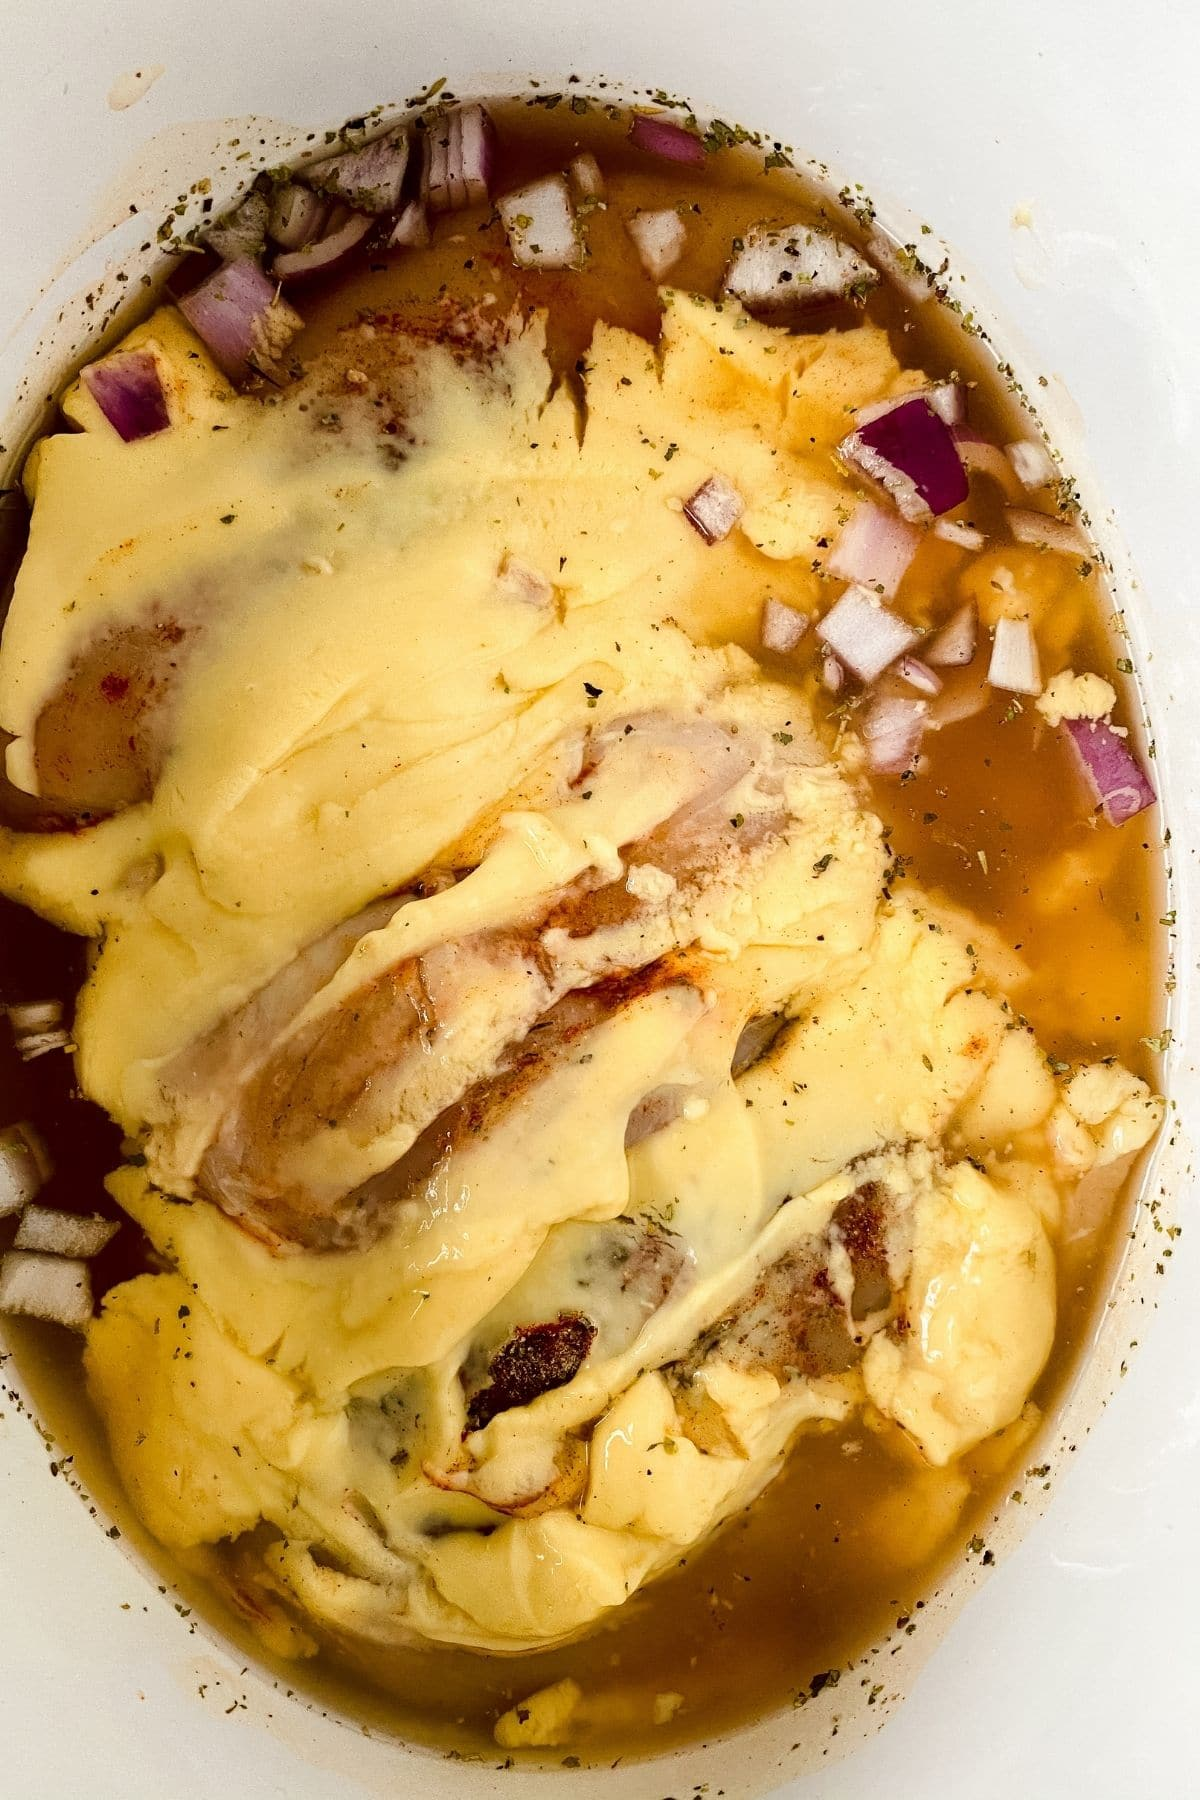 Chicken covered in cream soup